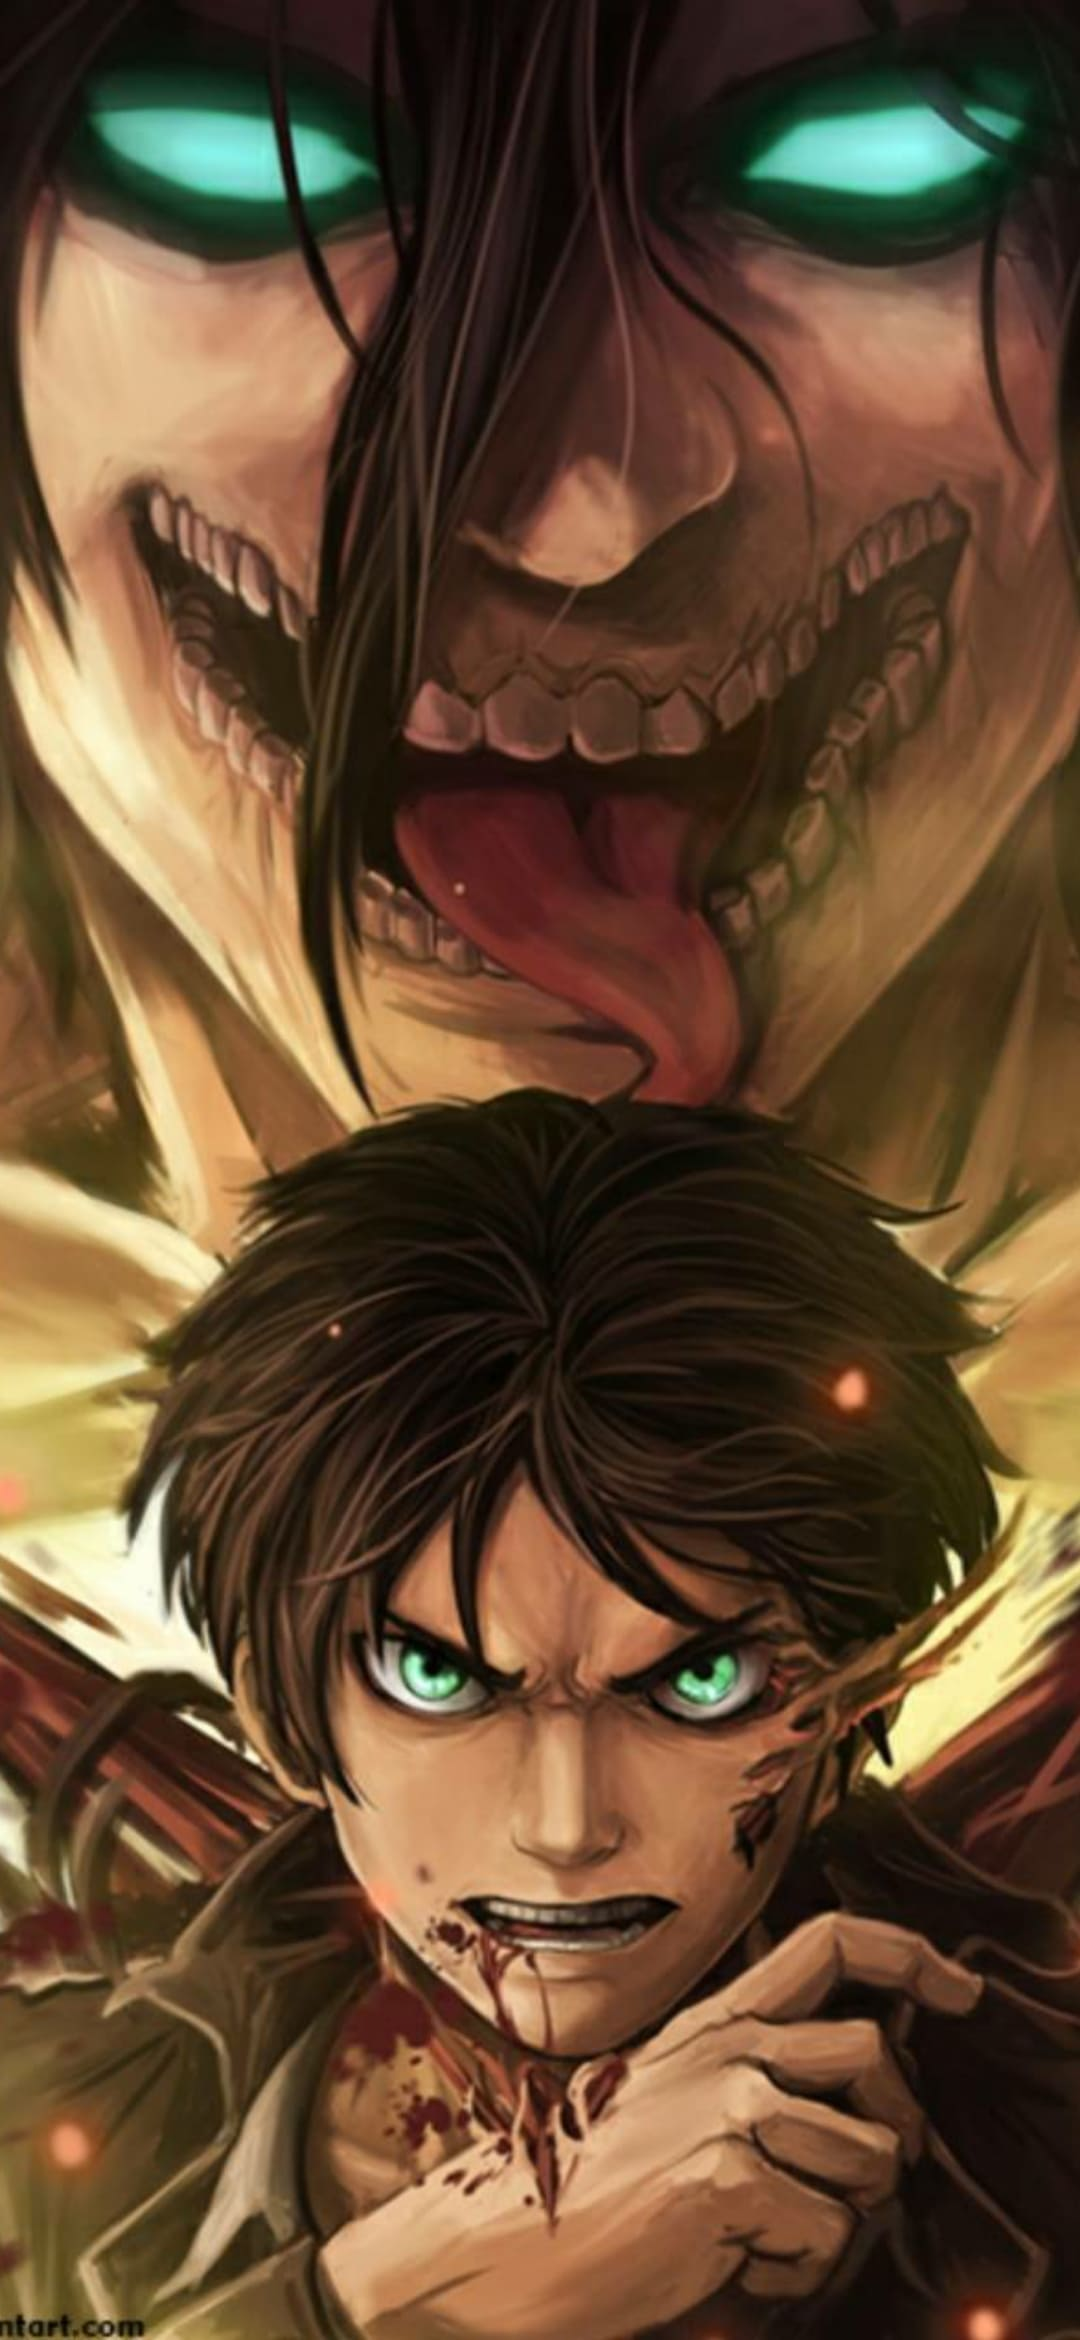 Attack On Titan Android Wallpaper Top Free Android Background Wallpaper